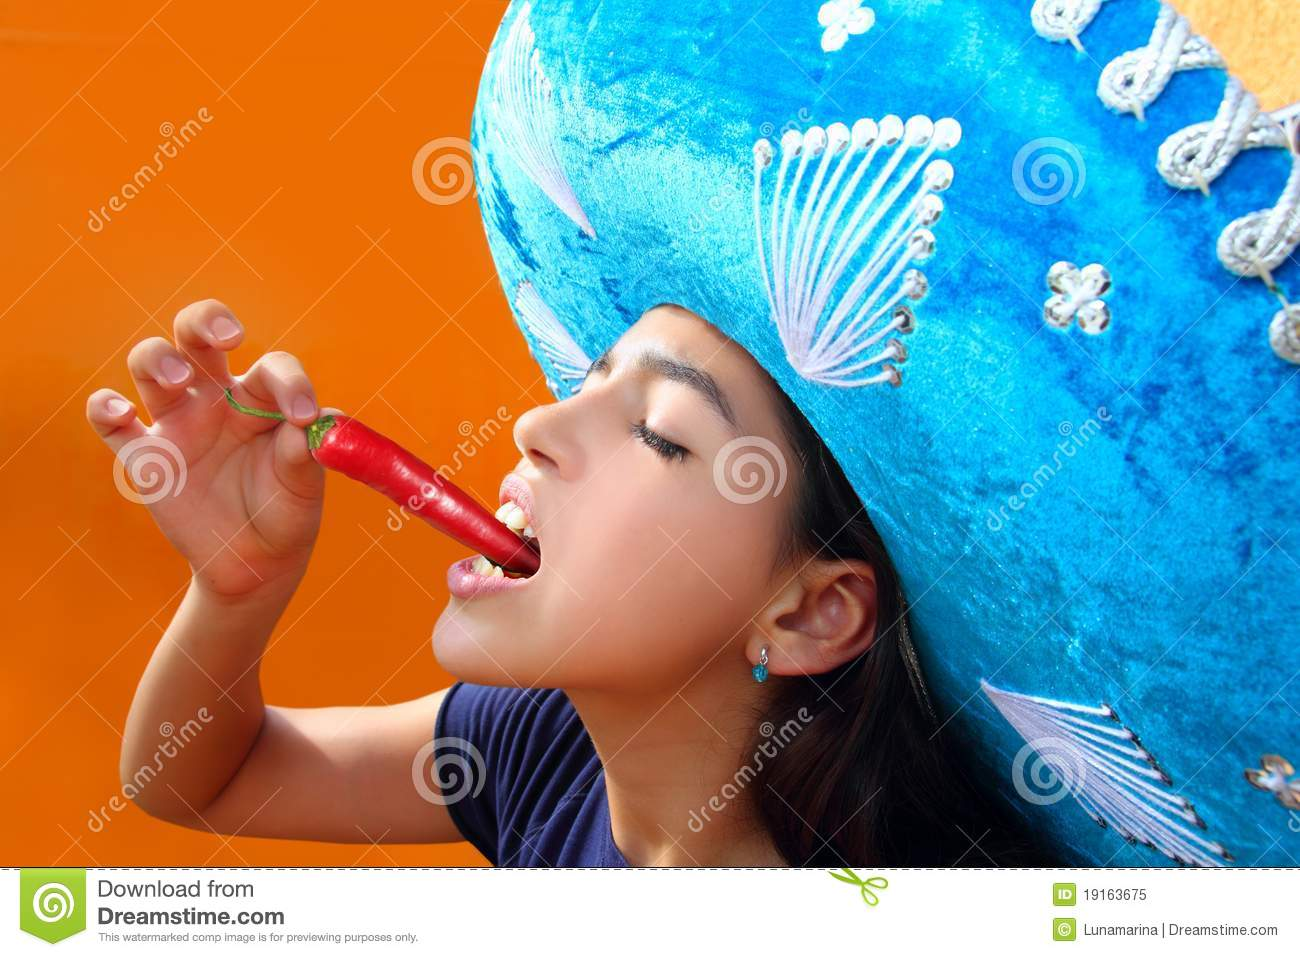 mexican girl eating red hot chili pepper stock image - image of